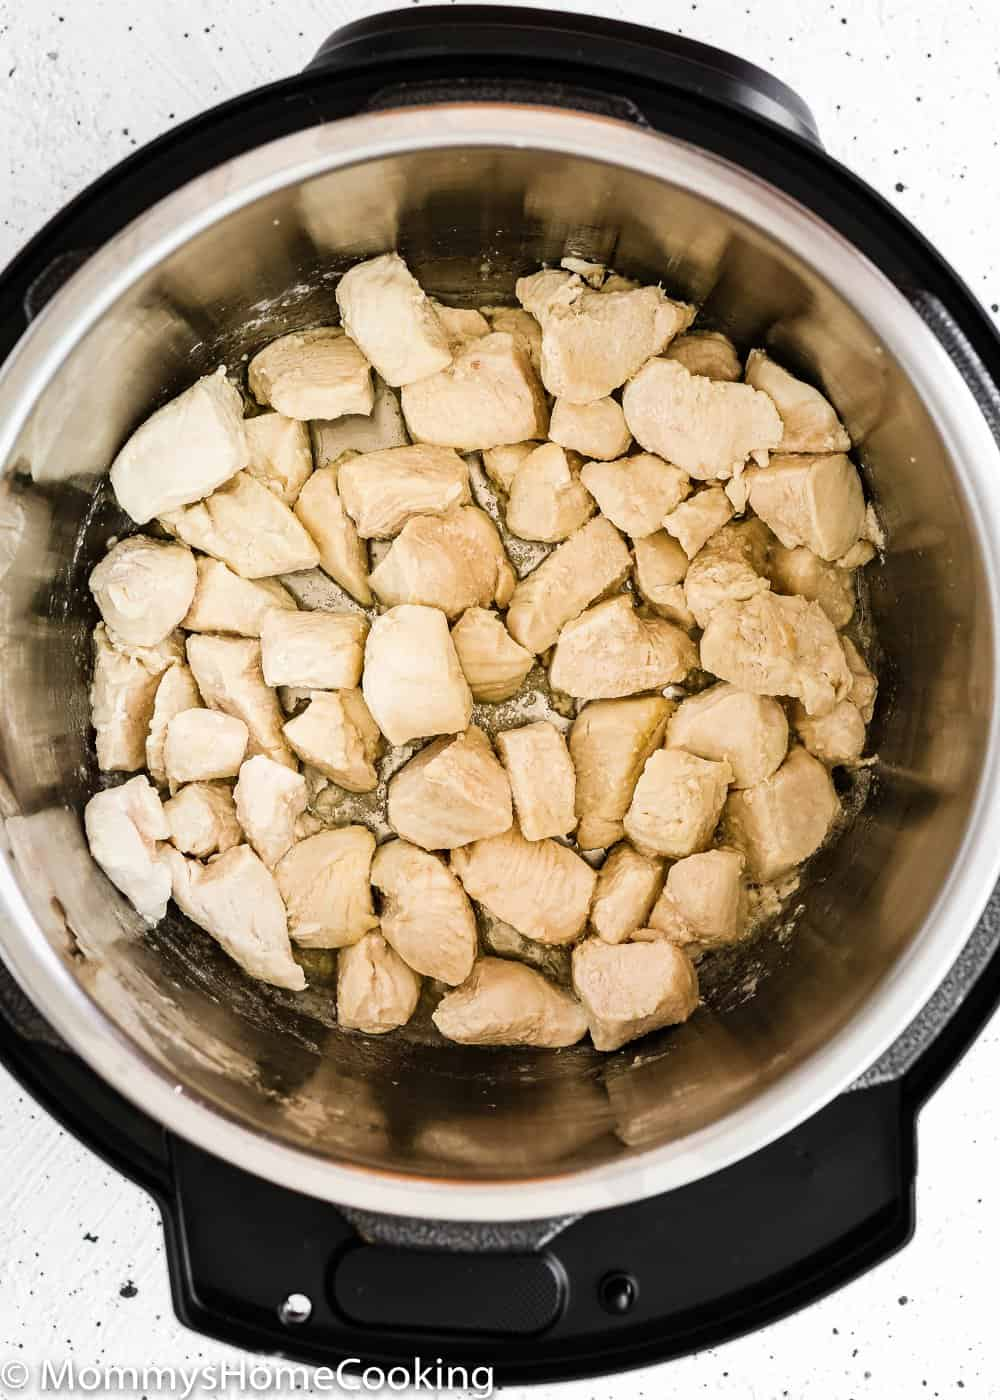 diced chicken breast in a Instant pot